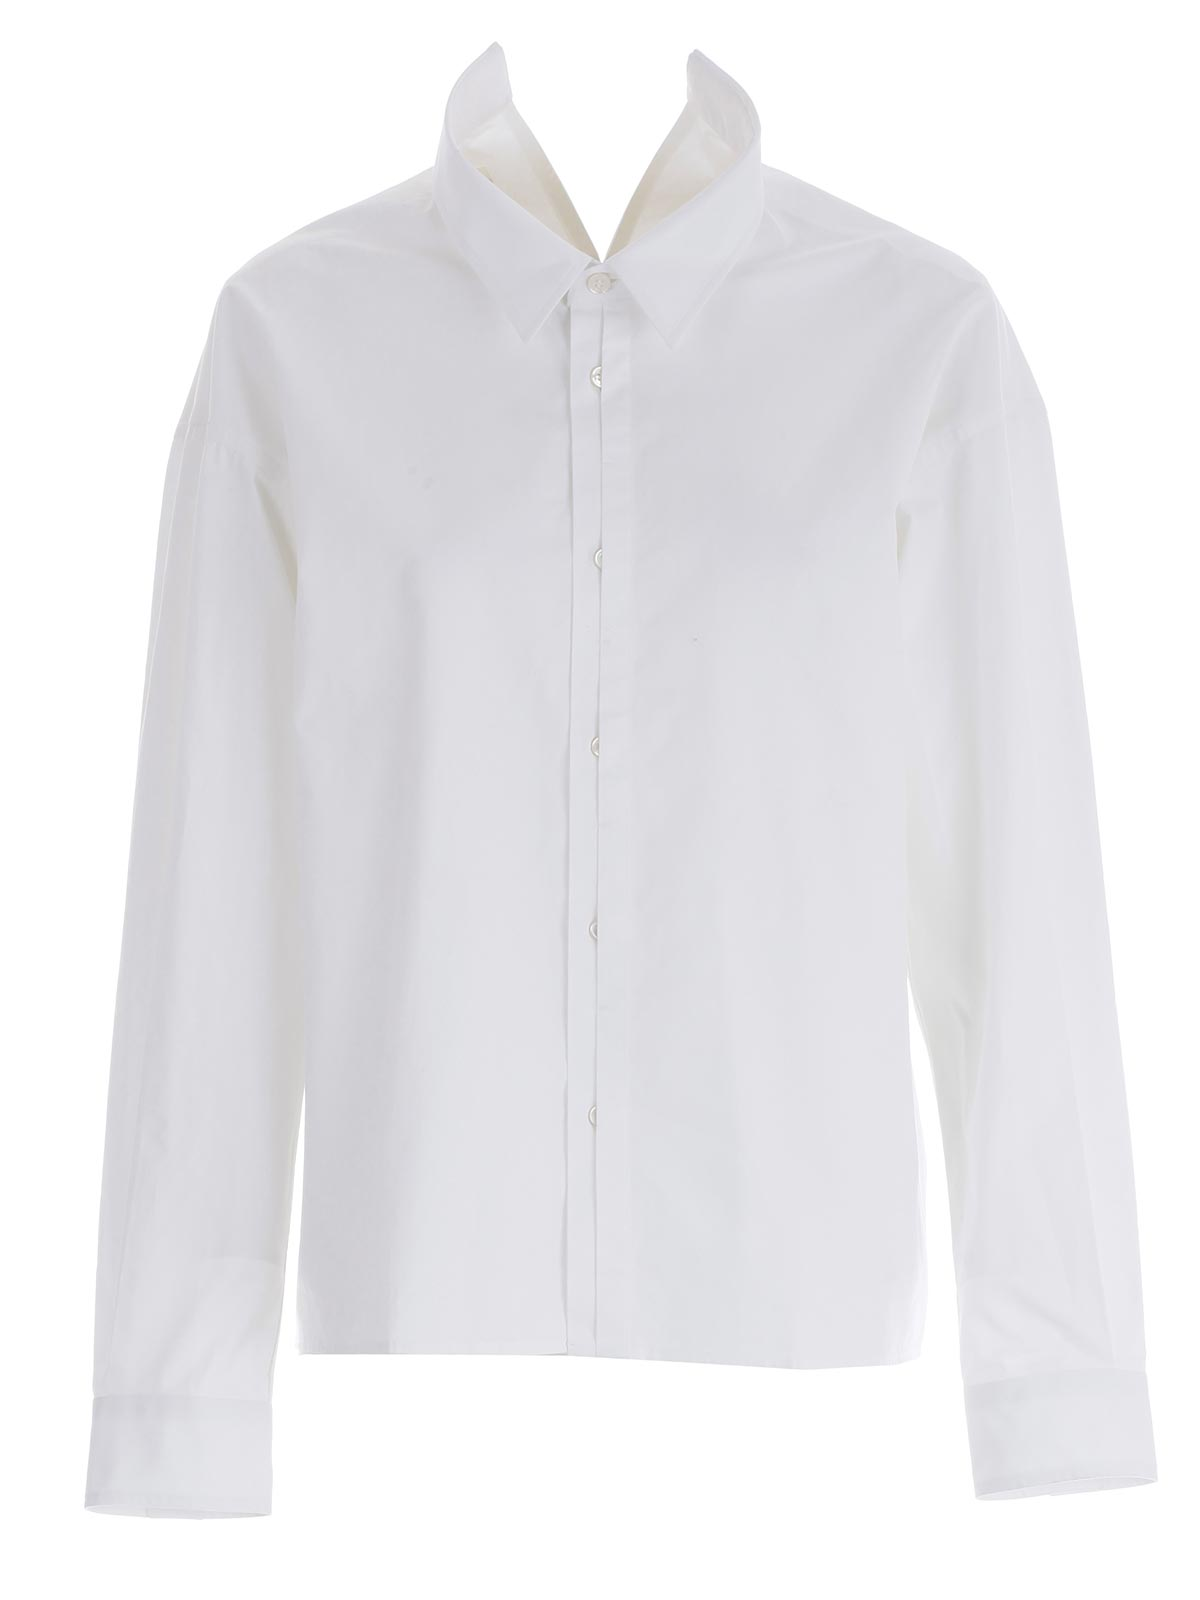 Picture of GOLDEN GOOSE DELUXE BRAND SHIRTS